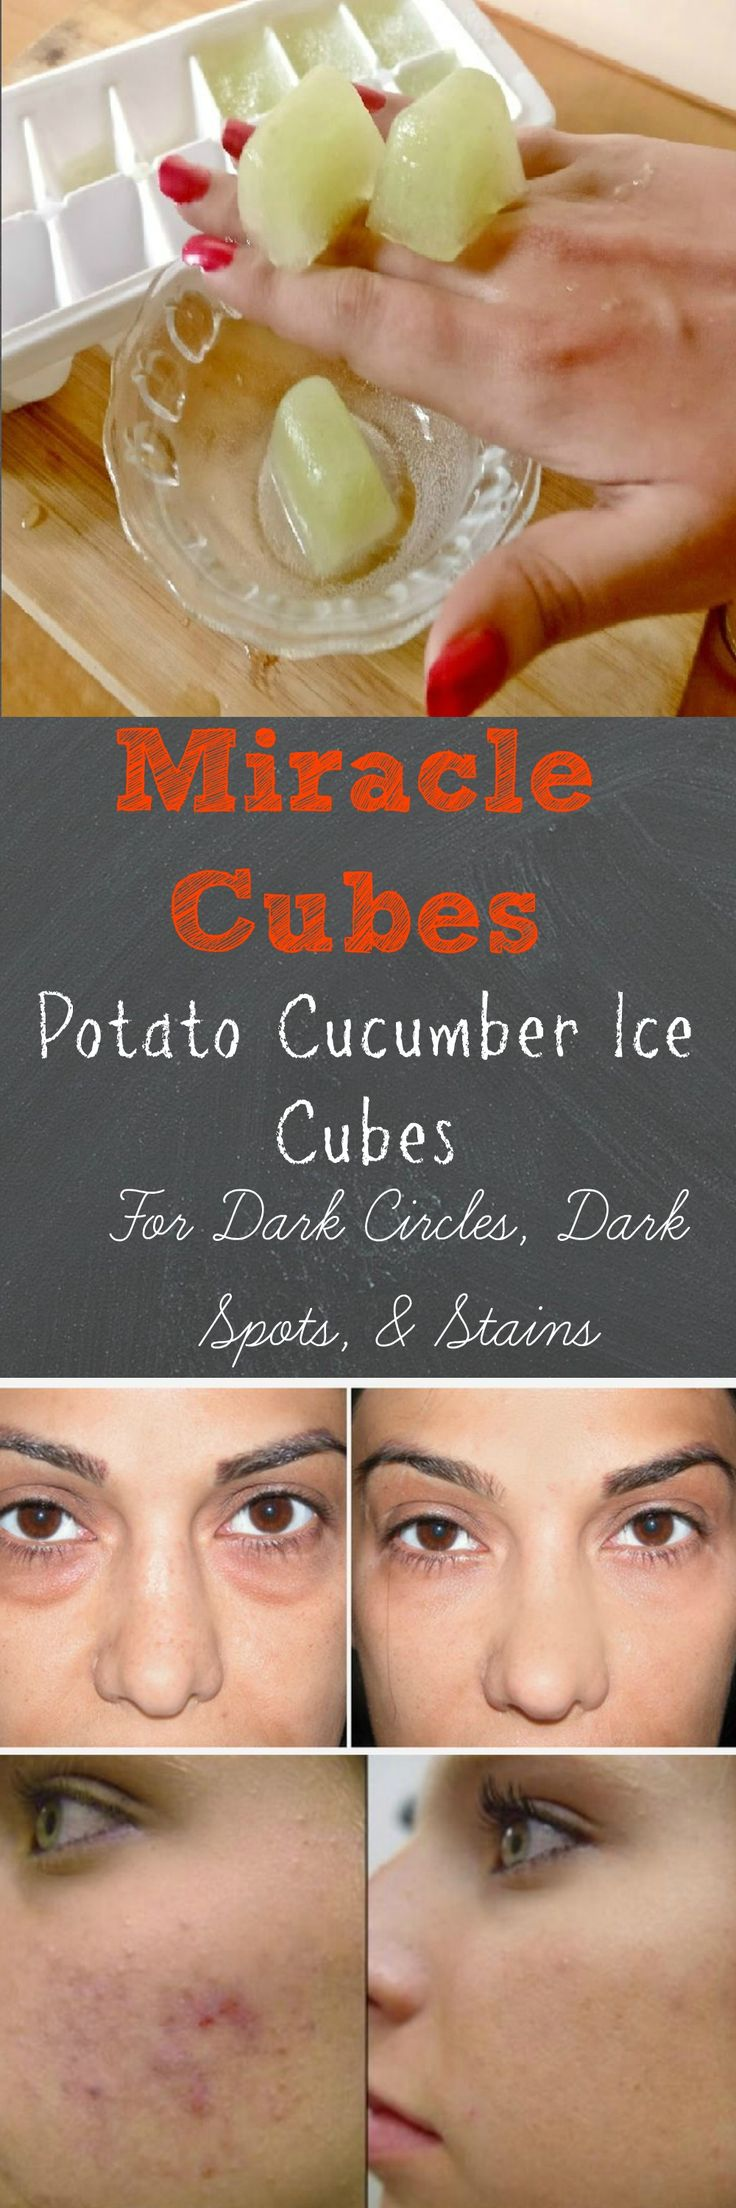 This super easy to make recipe will not only cool irritated skin and get rid of dark circles, but will also remove dark spots, discoloration, and skin stains. The main ingredients in the potato cucumber ice cubes are potato and cucumbers (obviously) which